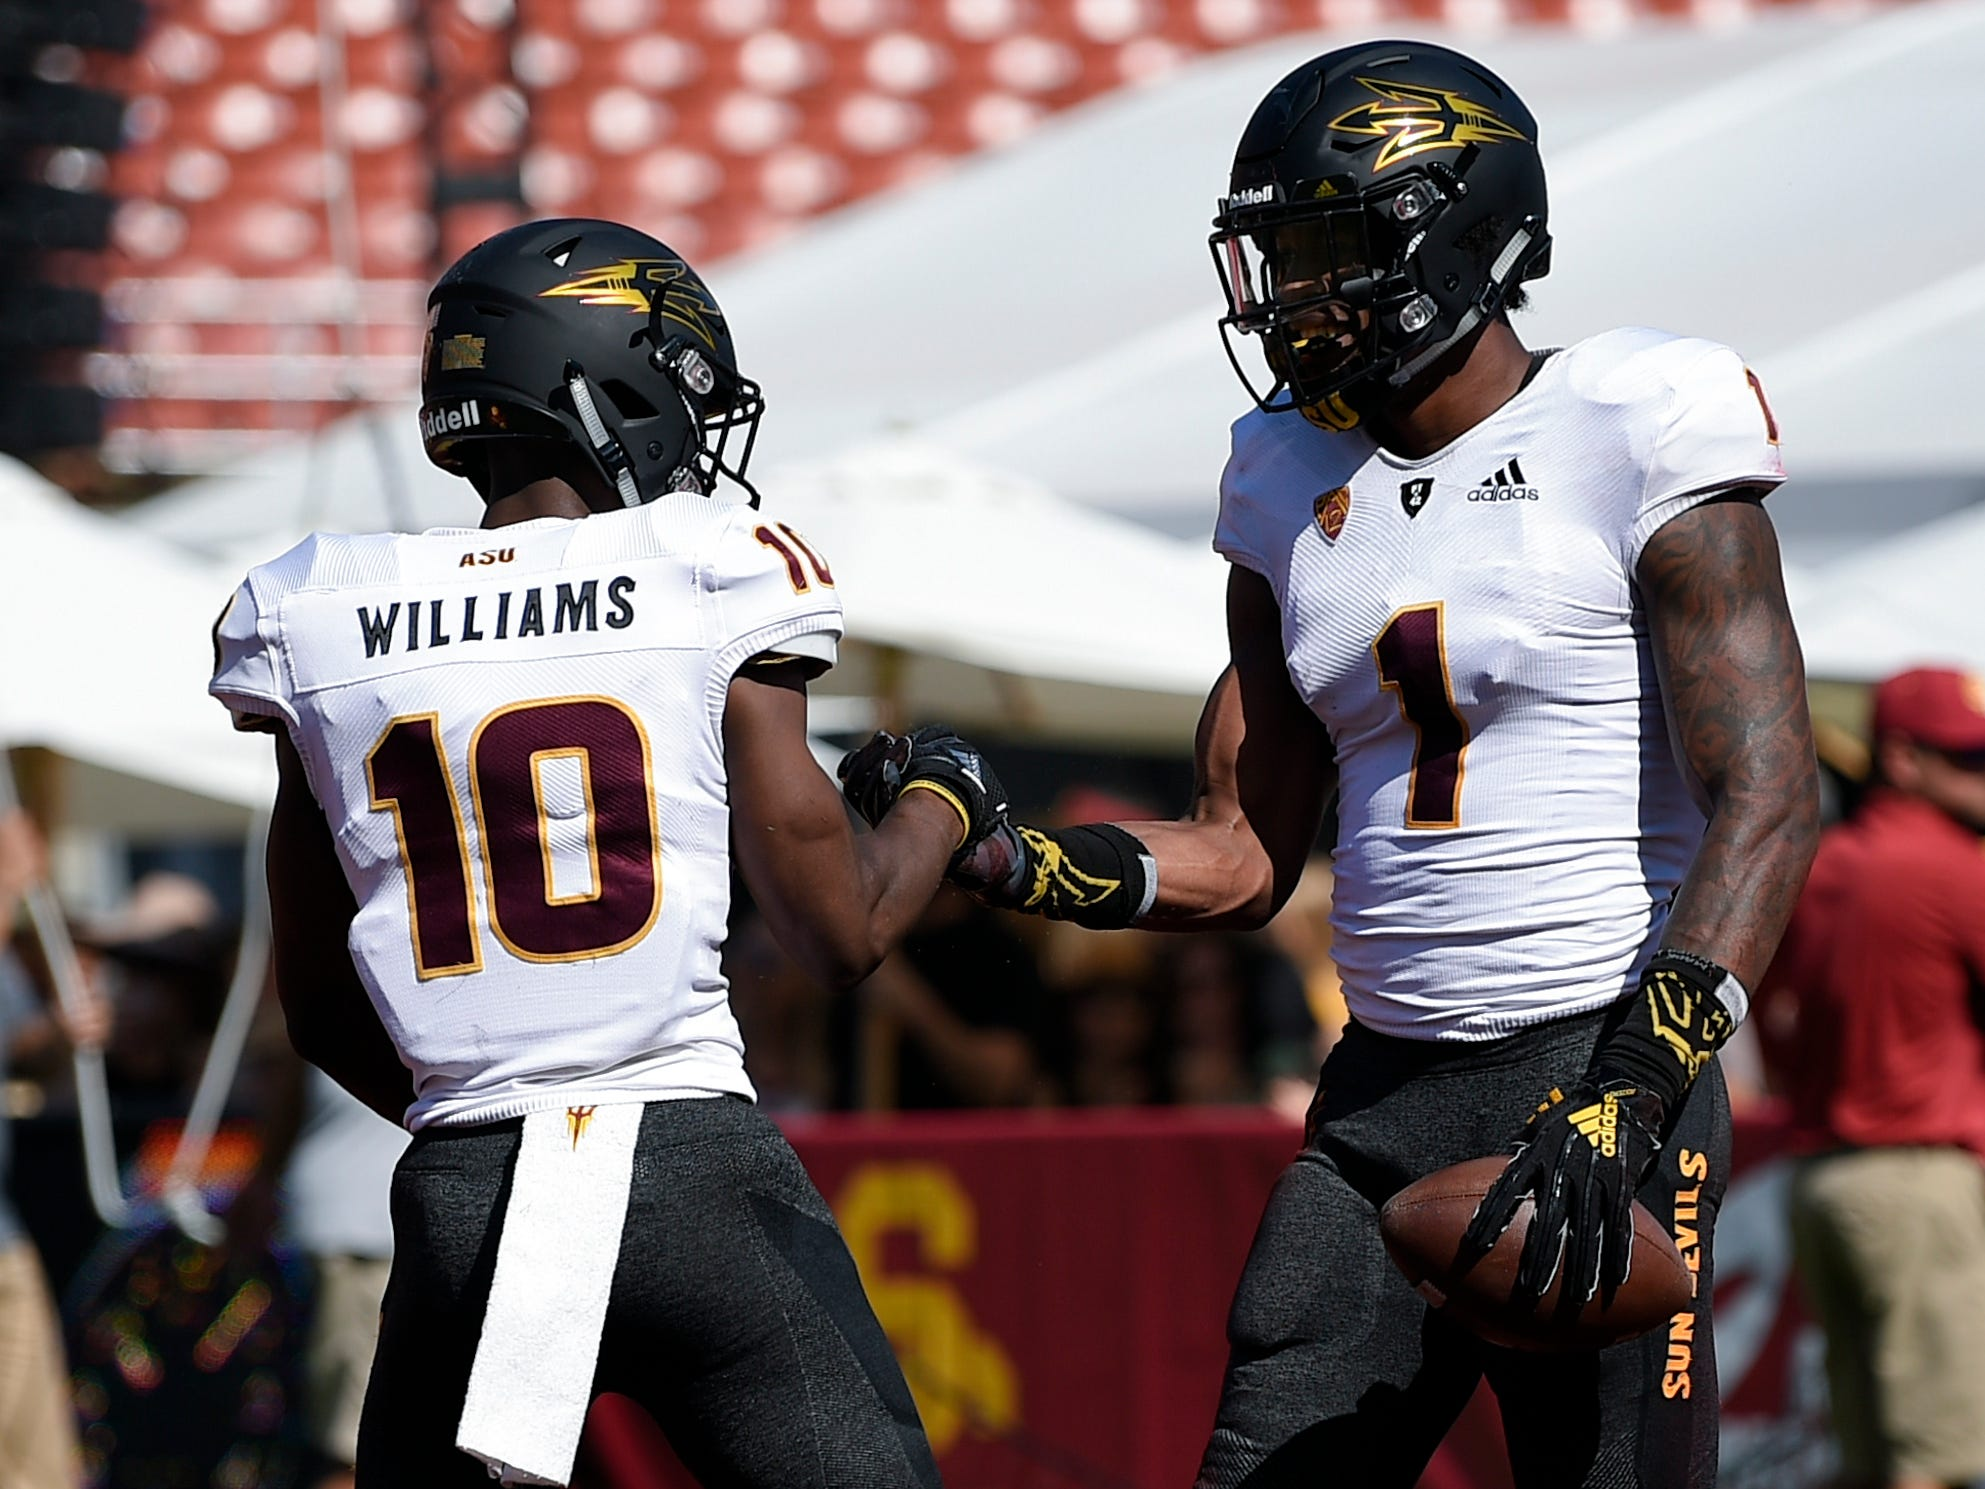 Oct 27, 2018; Los Angeles, CA, USA; Arizona State Sun Devils wide receiver N'Keal Harry (1) celebrates after his touchdown during the first half against the Southern California Trojans at Los Angeles Memorial Coliseum. Mandatory Credit: Kelvin Kuo-USA TODAY Sports